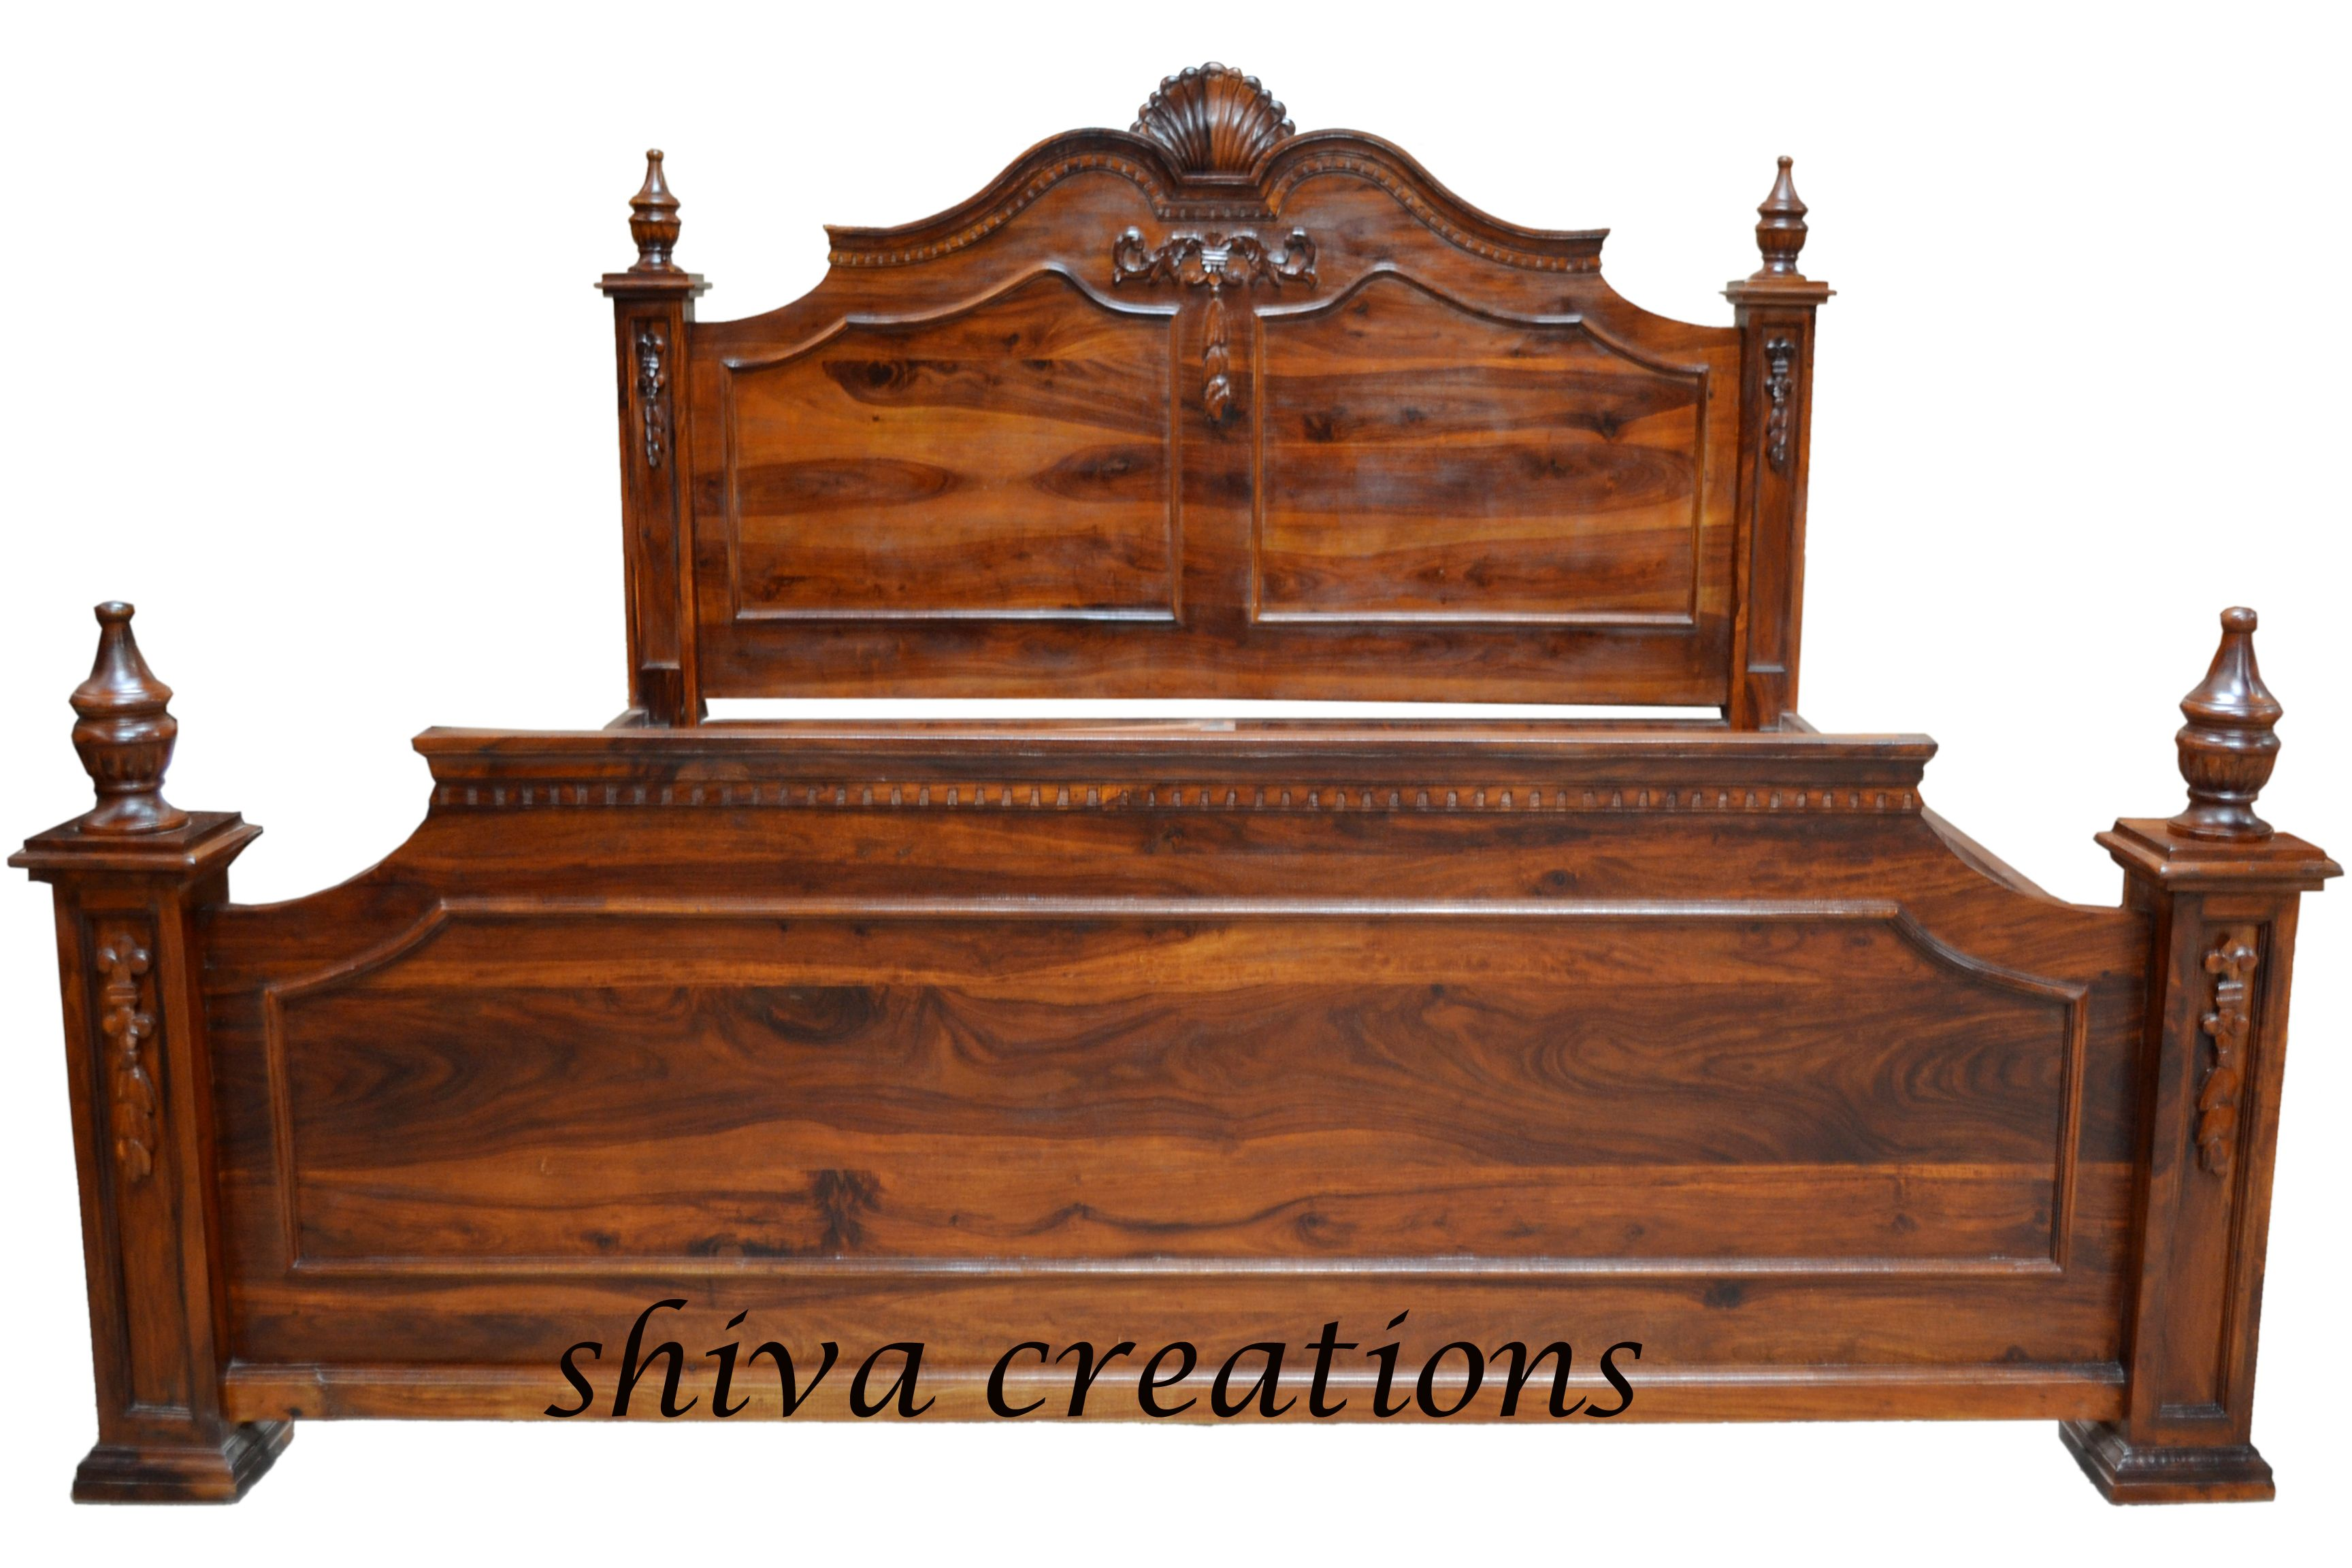 Carved Sheesham Wood Bed India